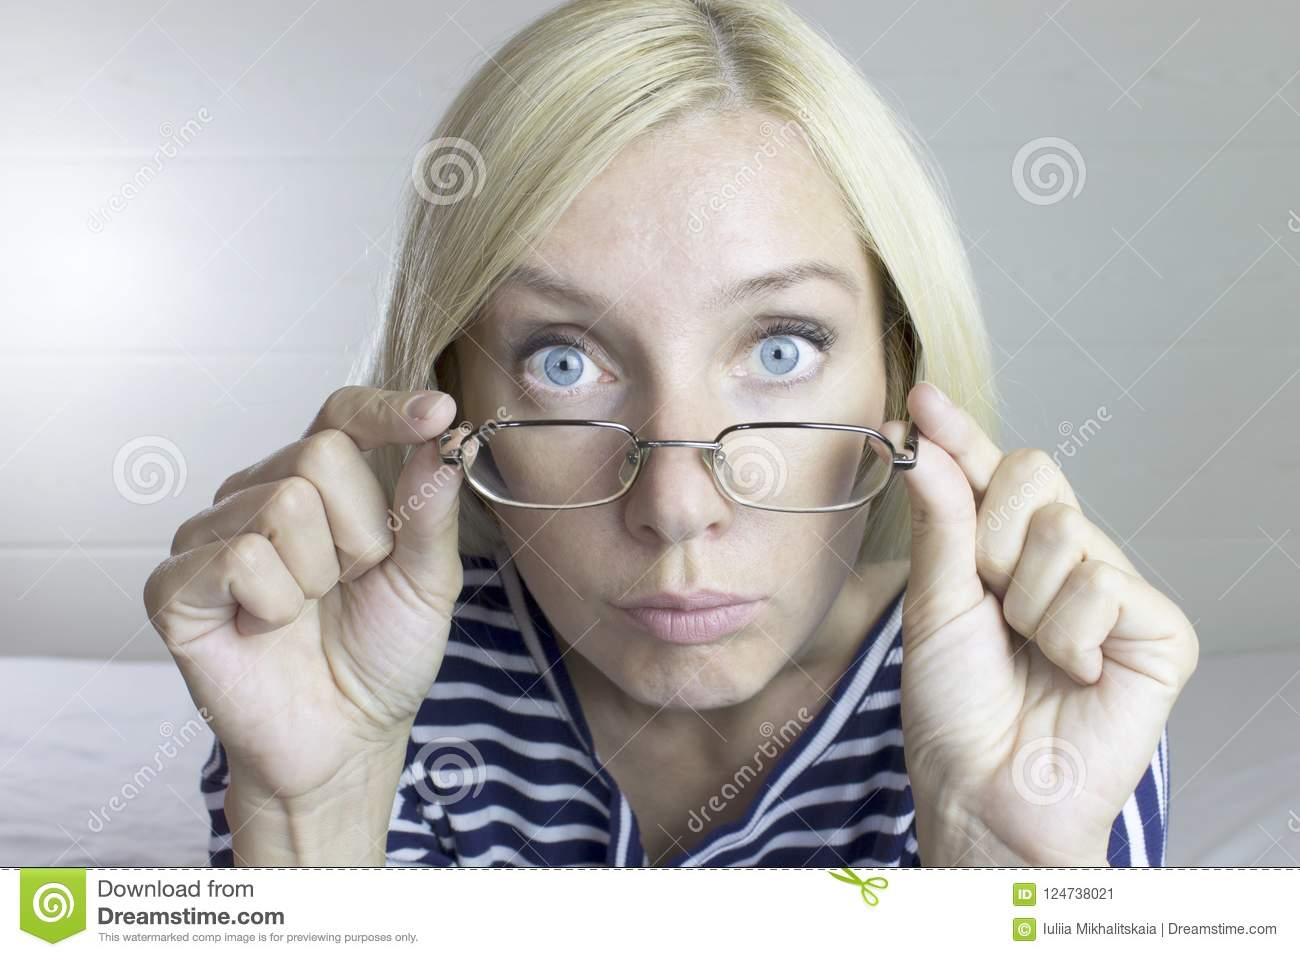 Blondes wearing glasses facial